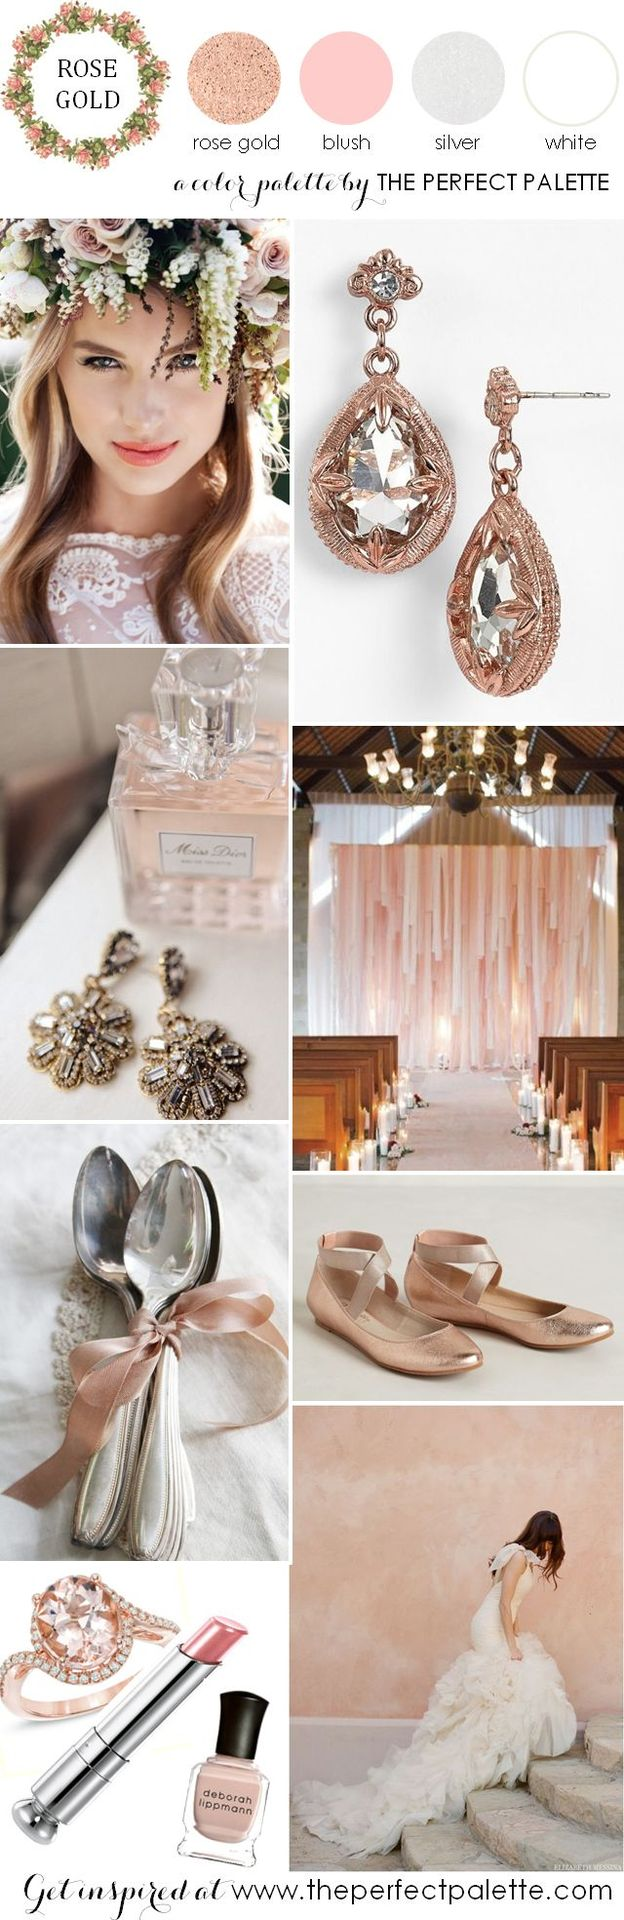 The Perfect Palette: now trending: rose gold and blush